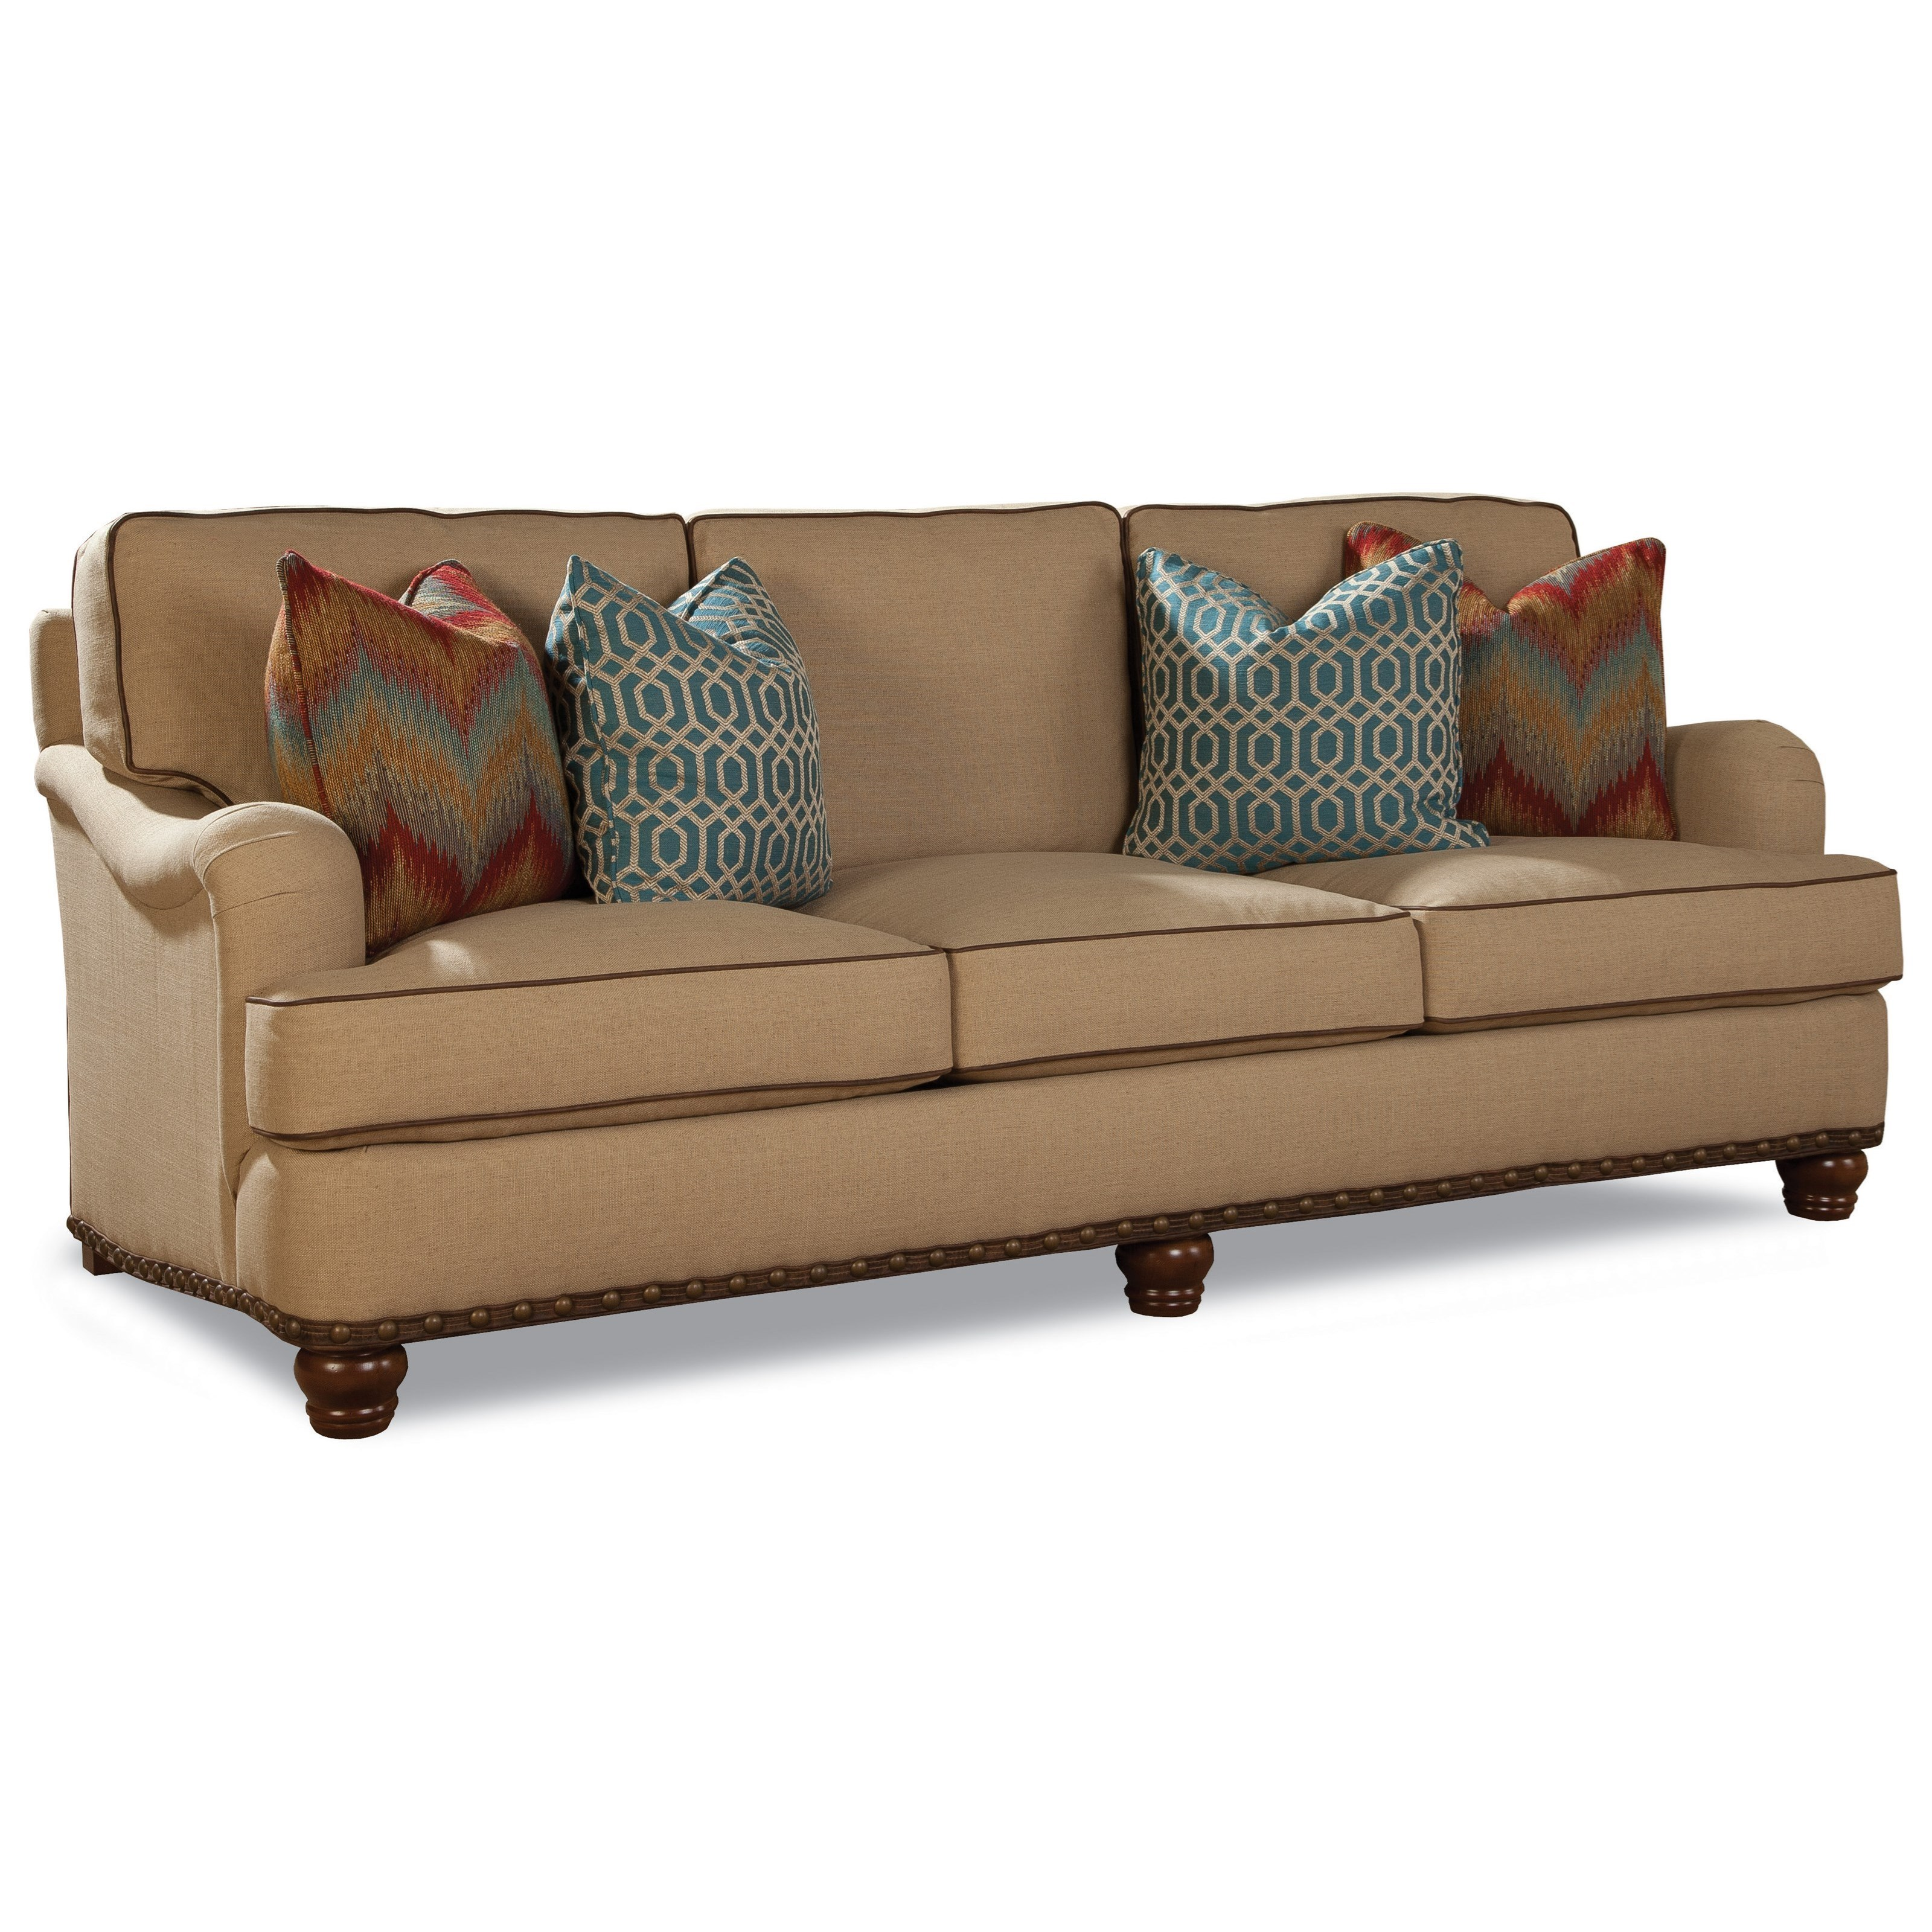 Huntington House 2071 Sofa - Item Number: 2071-20